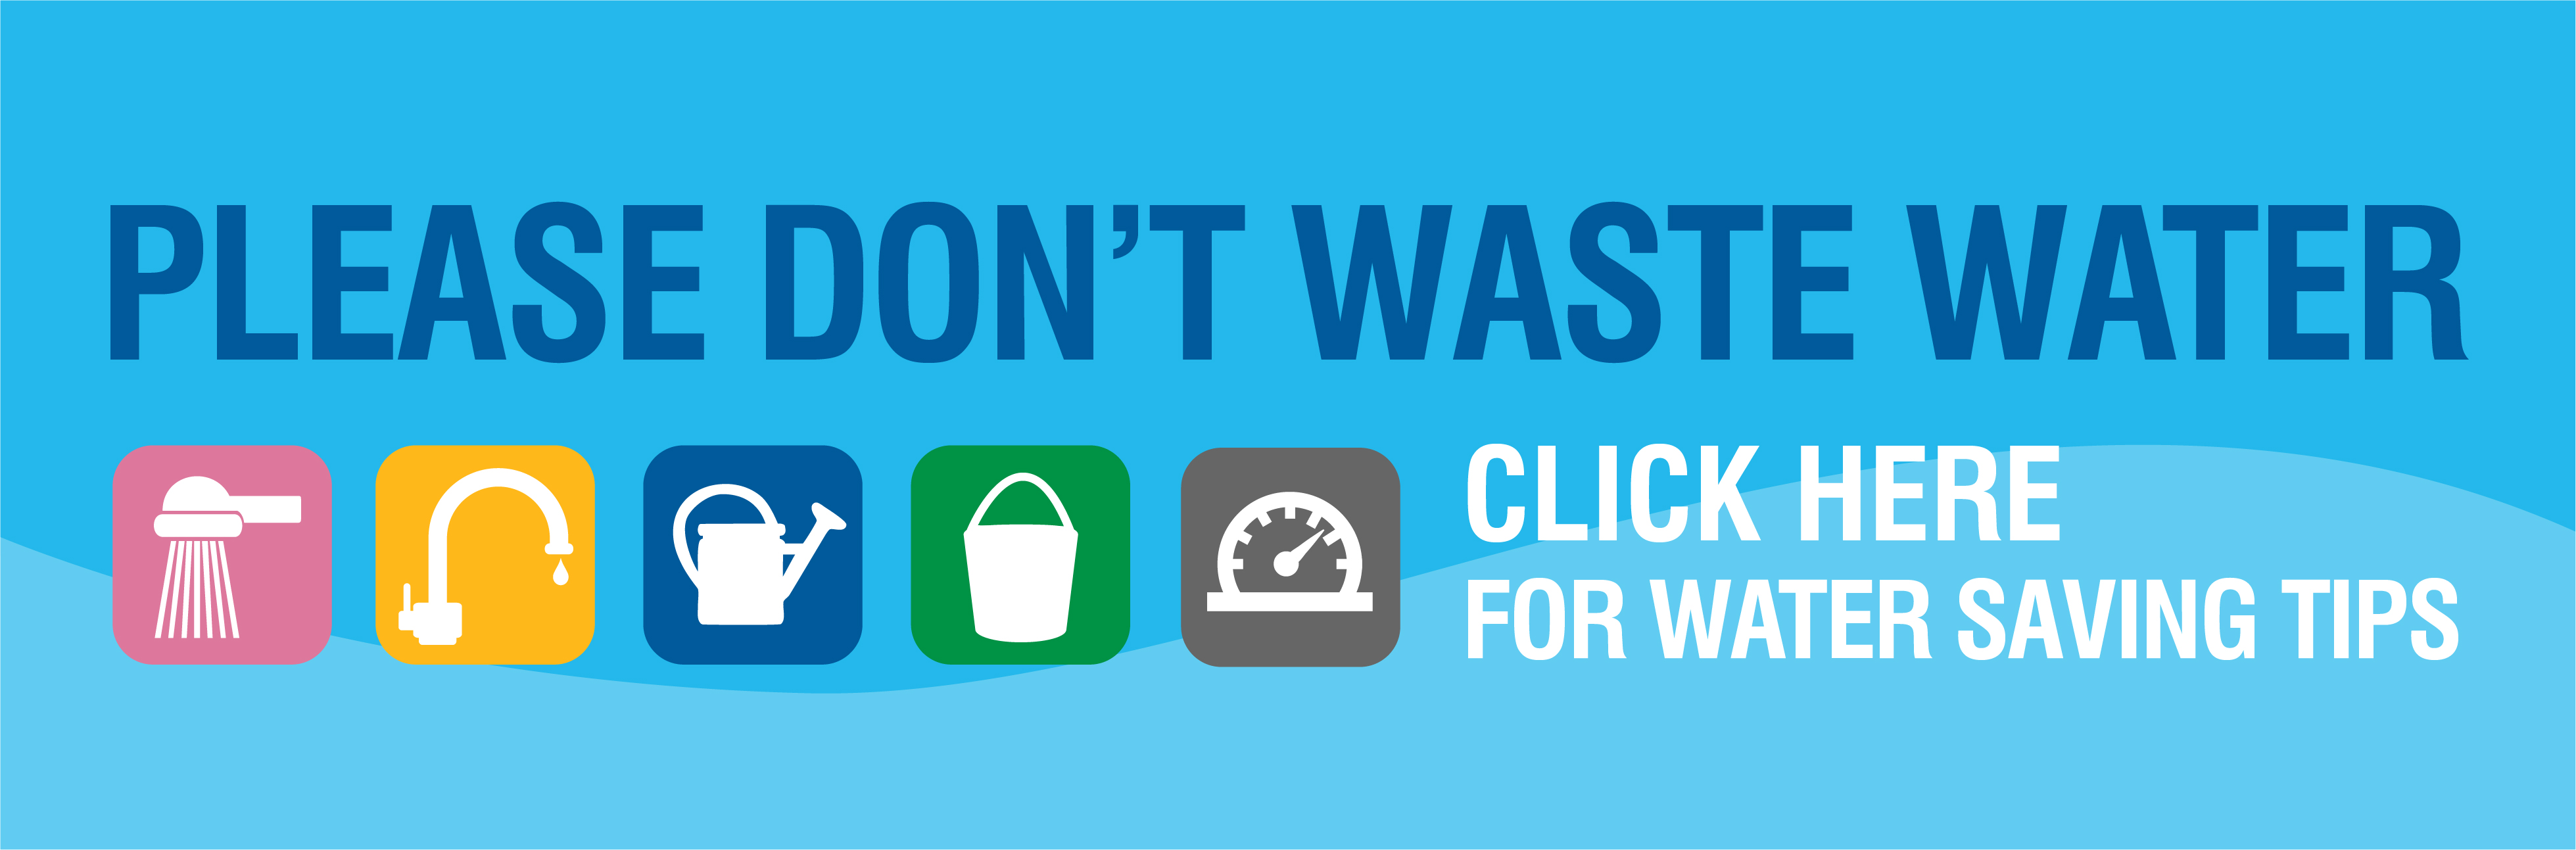 74704-001 JW – Web Banner – Water saving tips v2-02